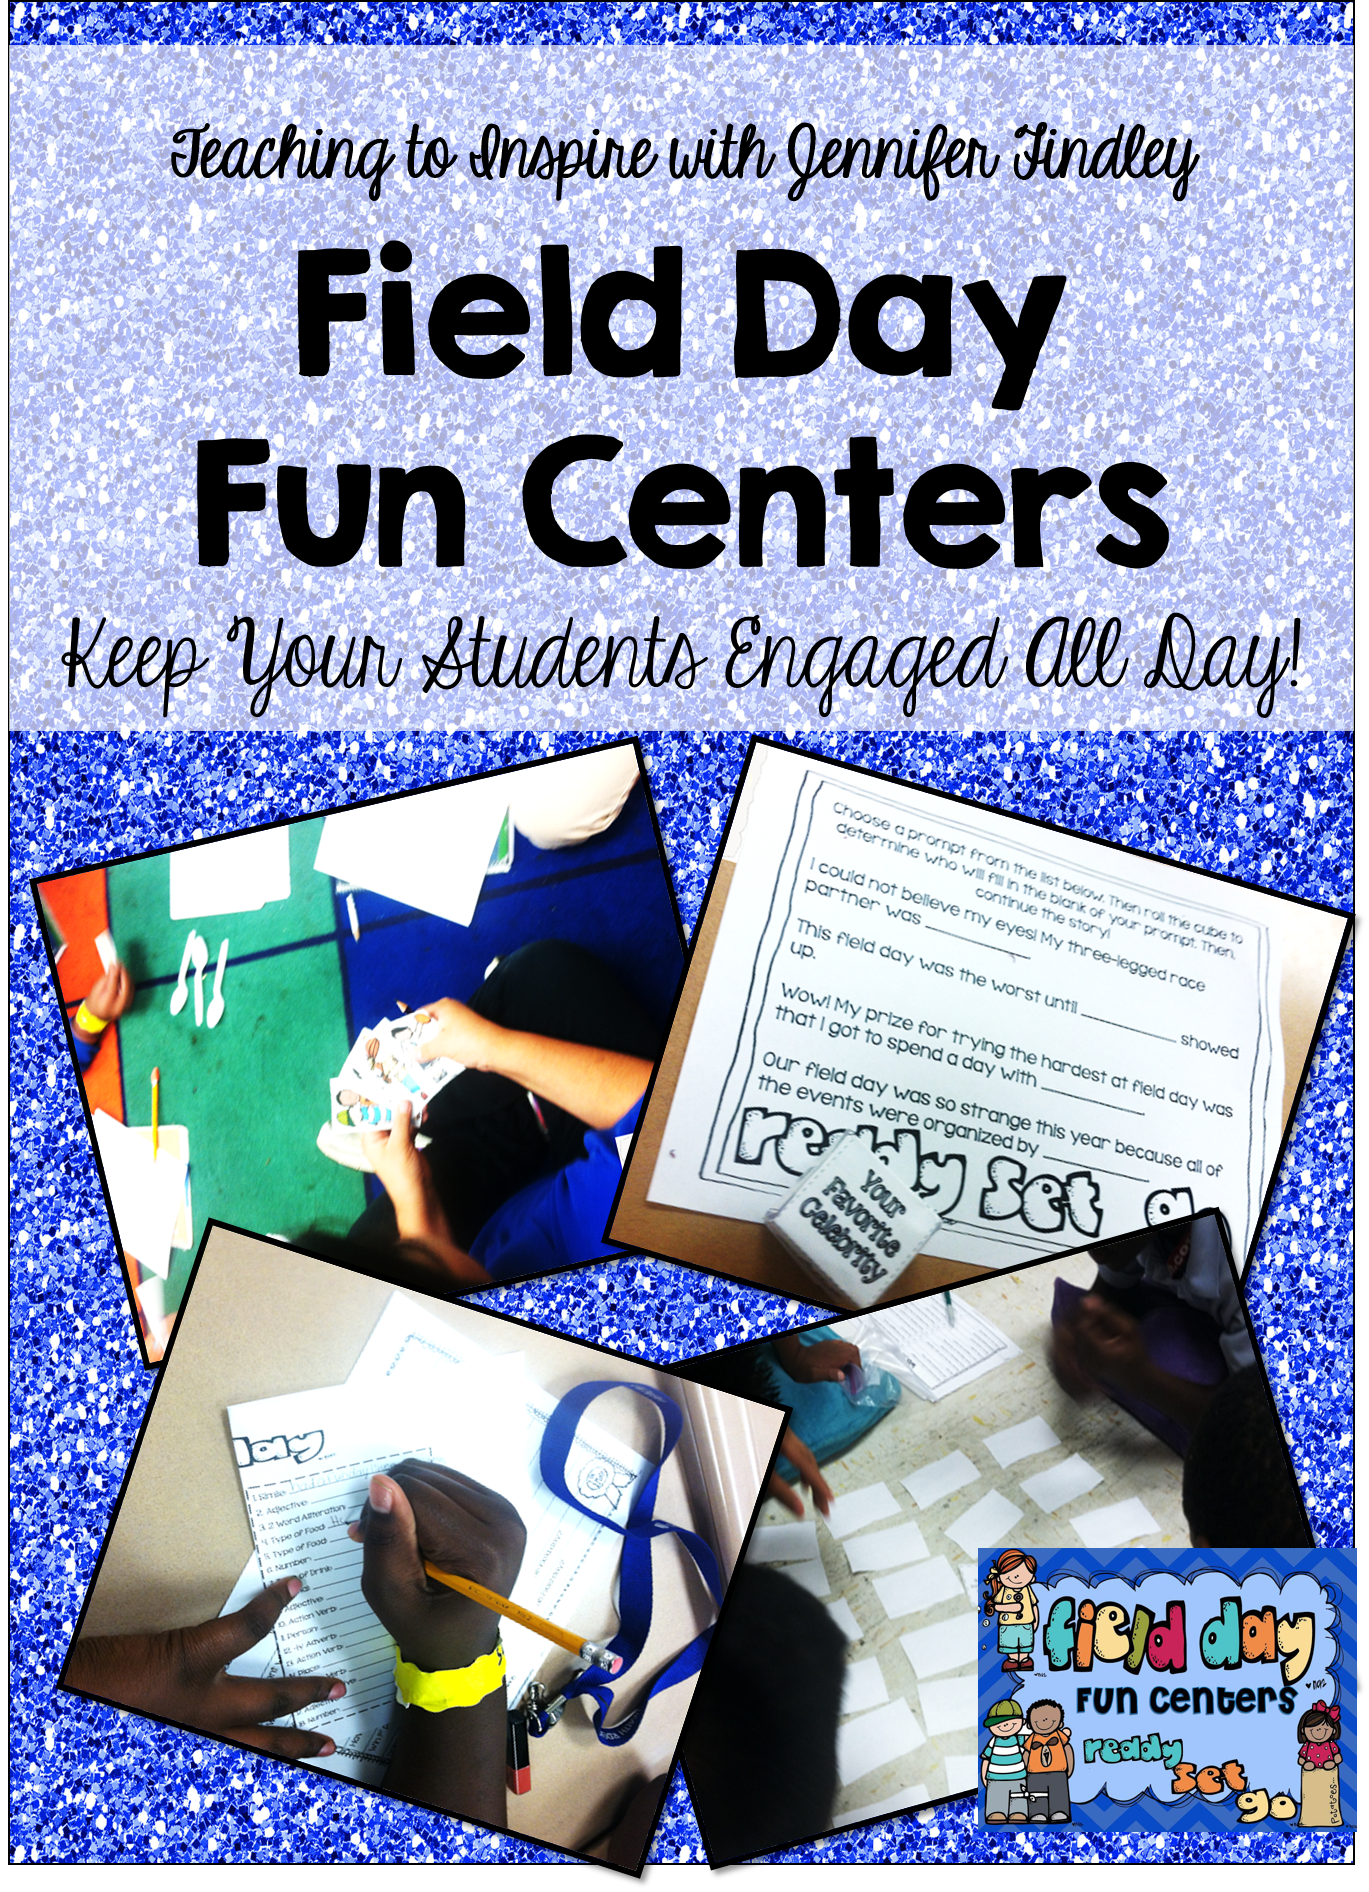 Field Day Fun Centers